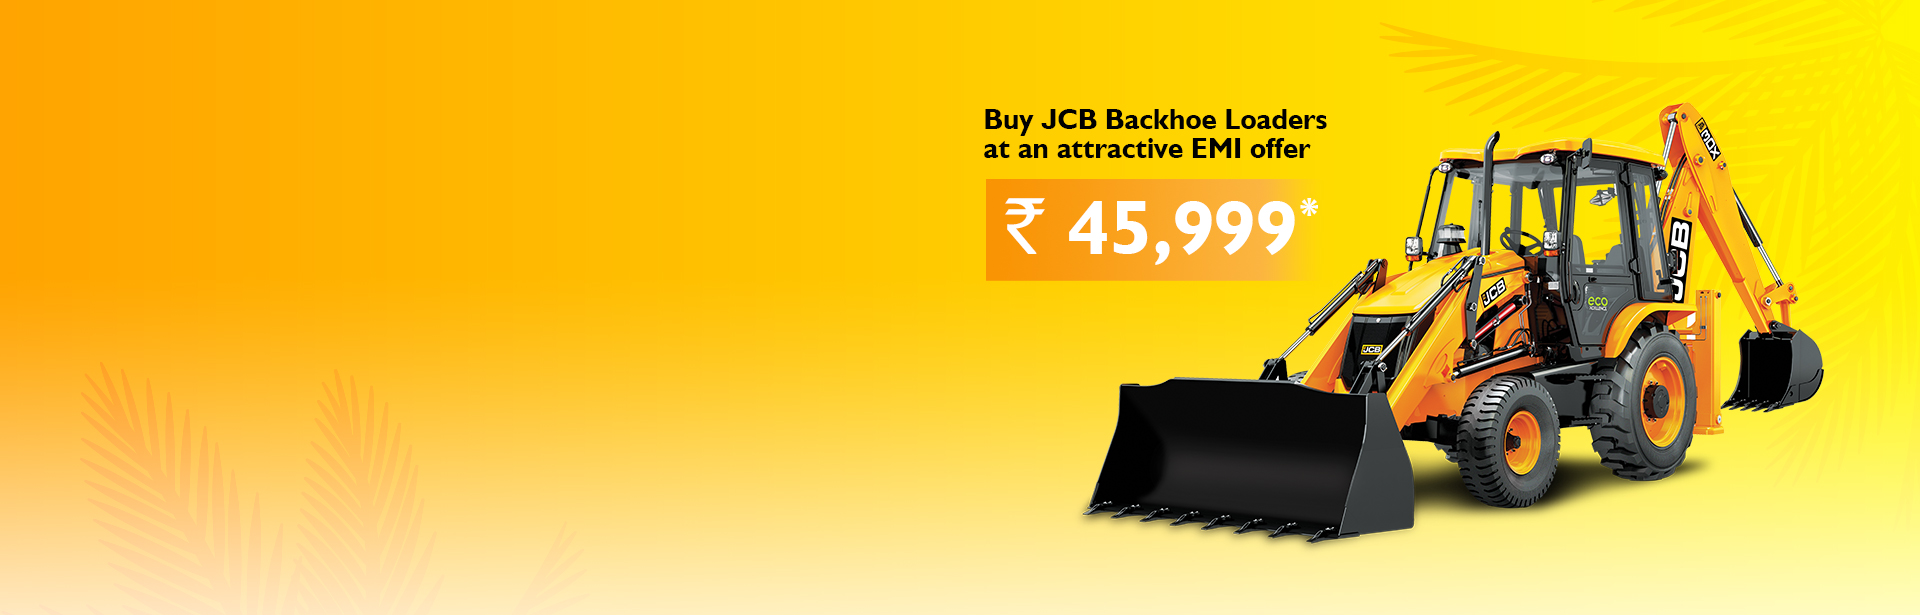 BHL Mega Summer Offer Guwahati Oja Earthmovers JCB